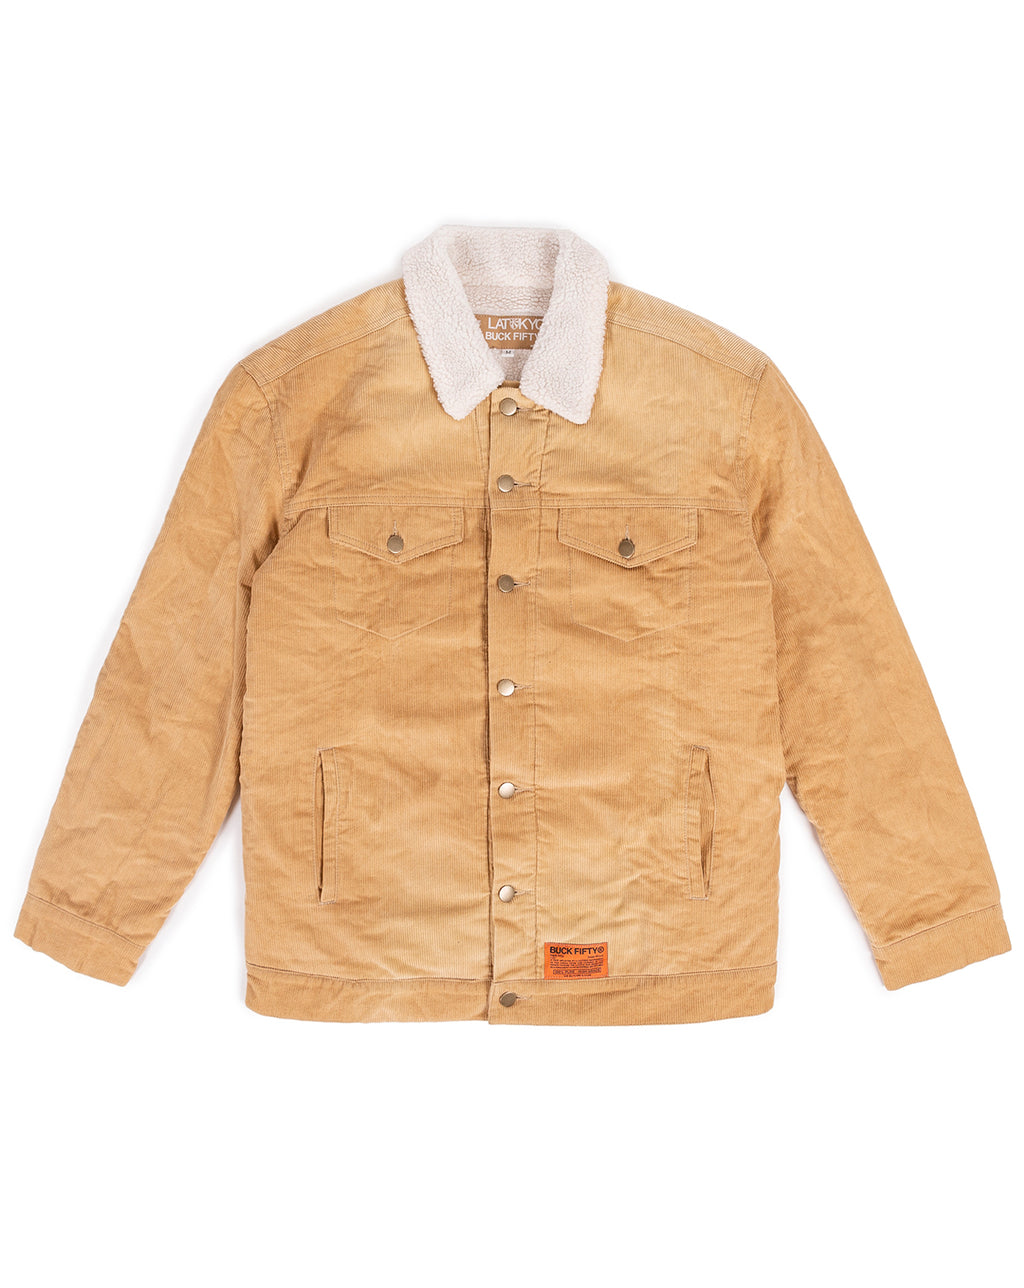 "Latokyo x BUCKFIFTY ""Silence"" Jacket (Wheat)"